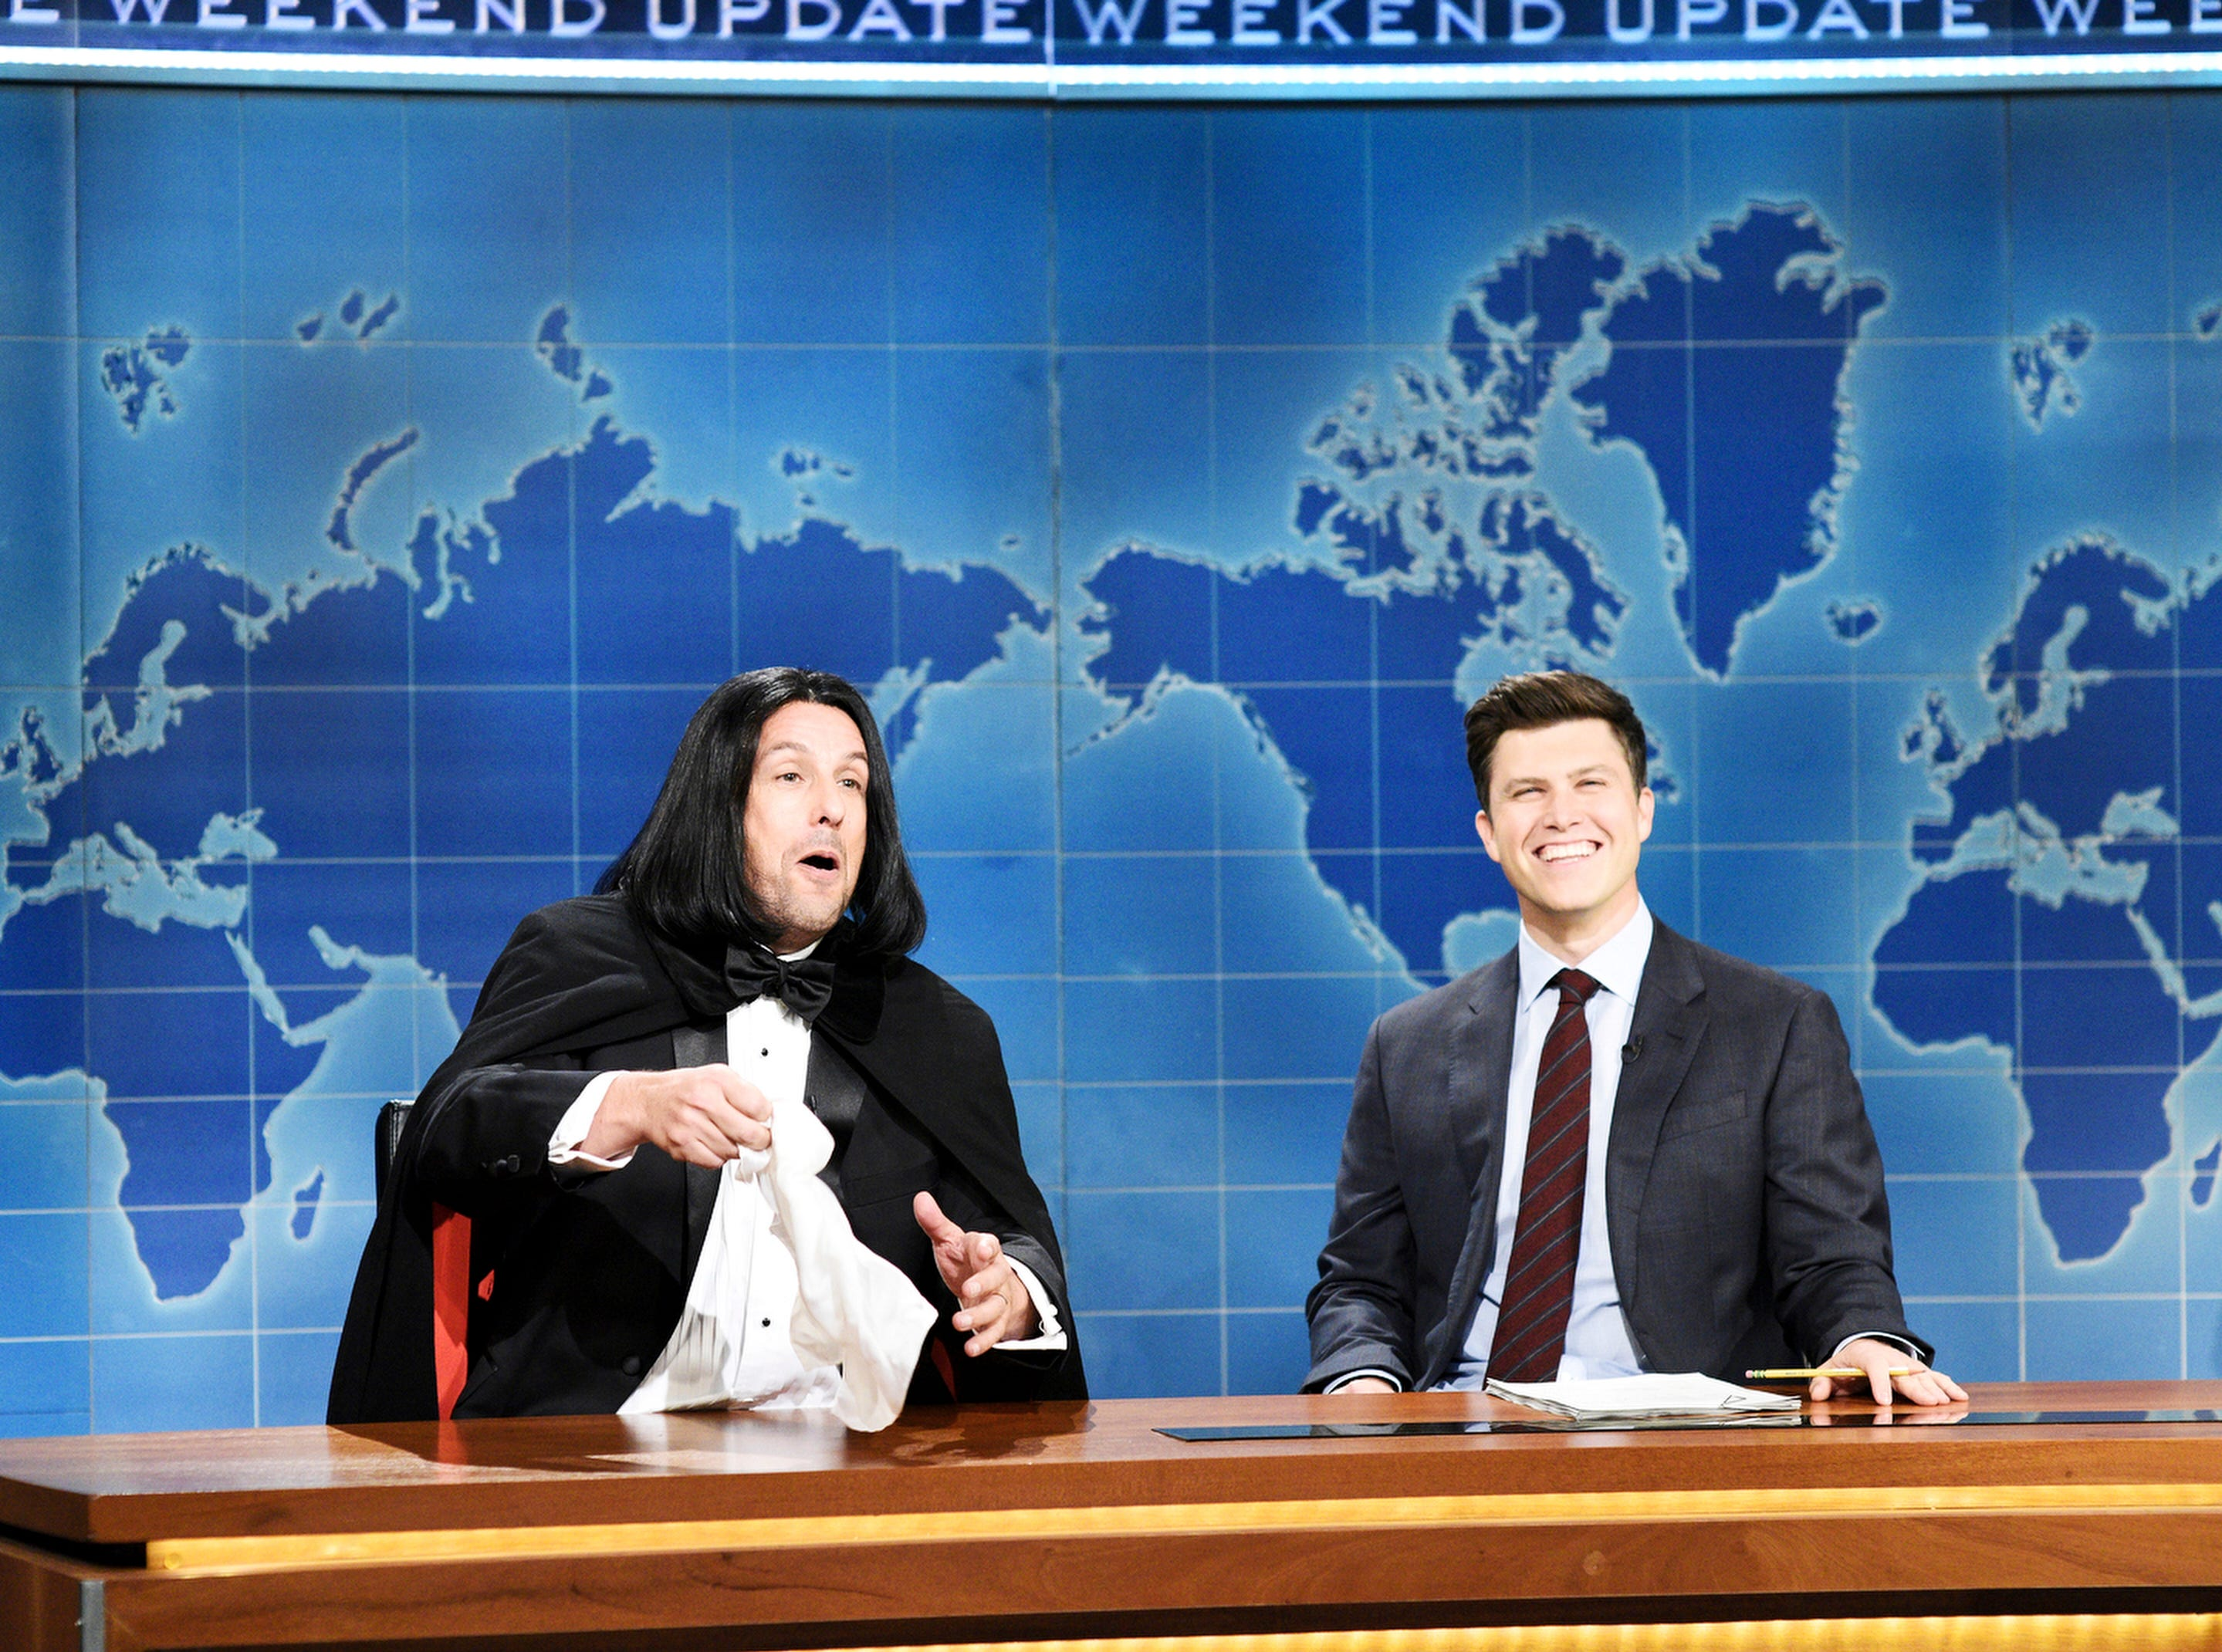 Sandler brought back his iconic Opera Man during Weekend Update with Colin Jost.